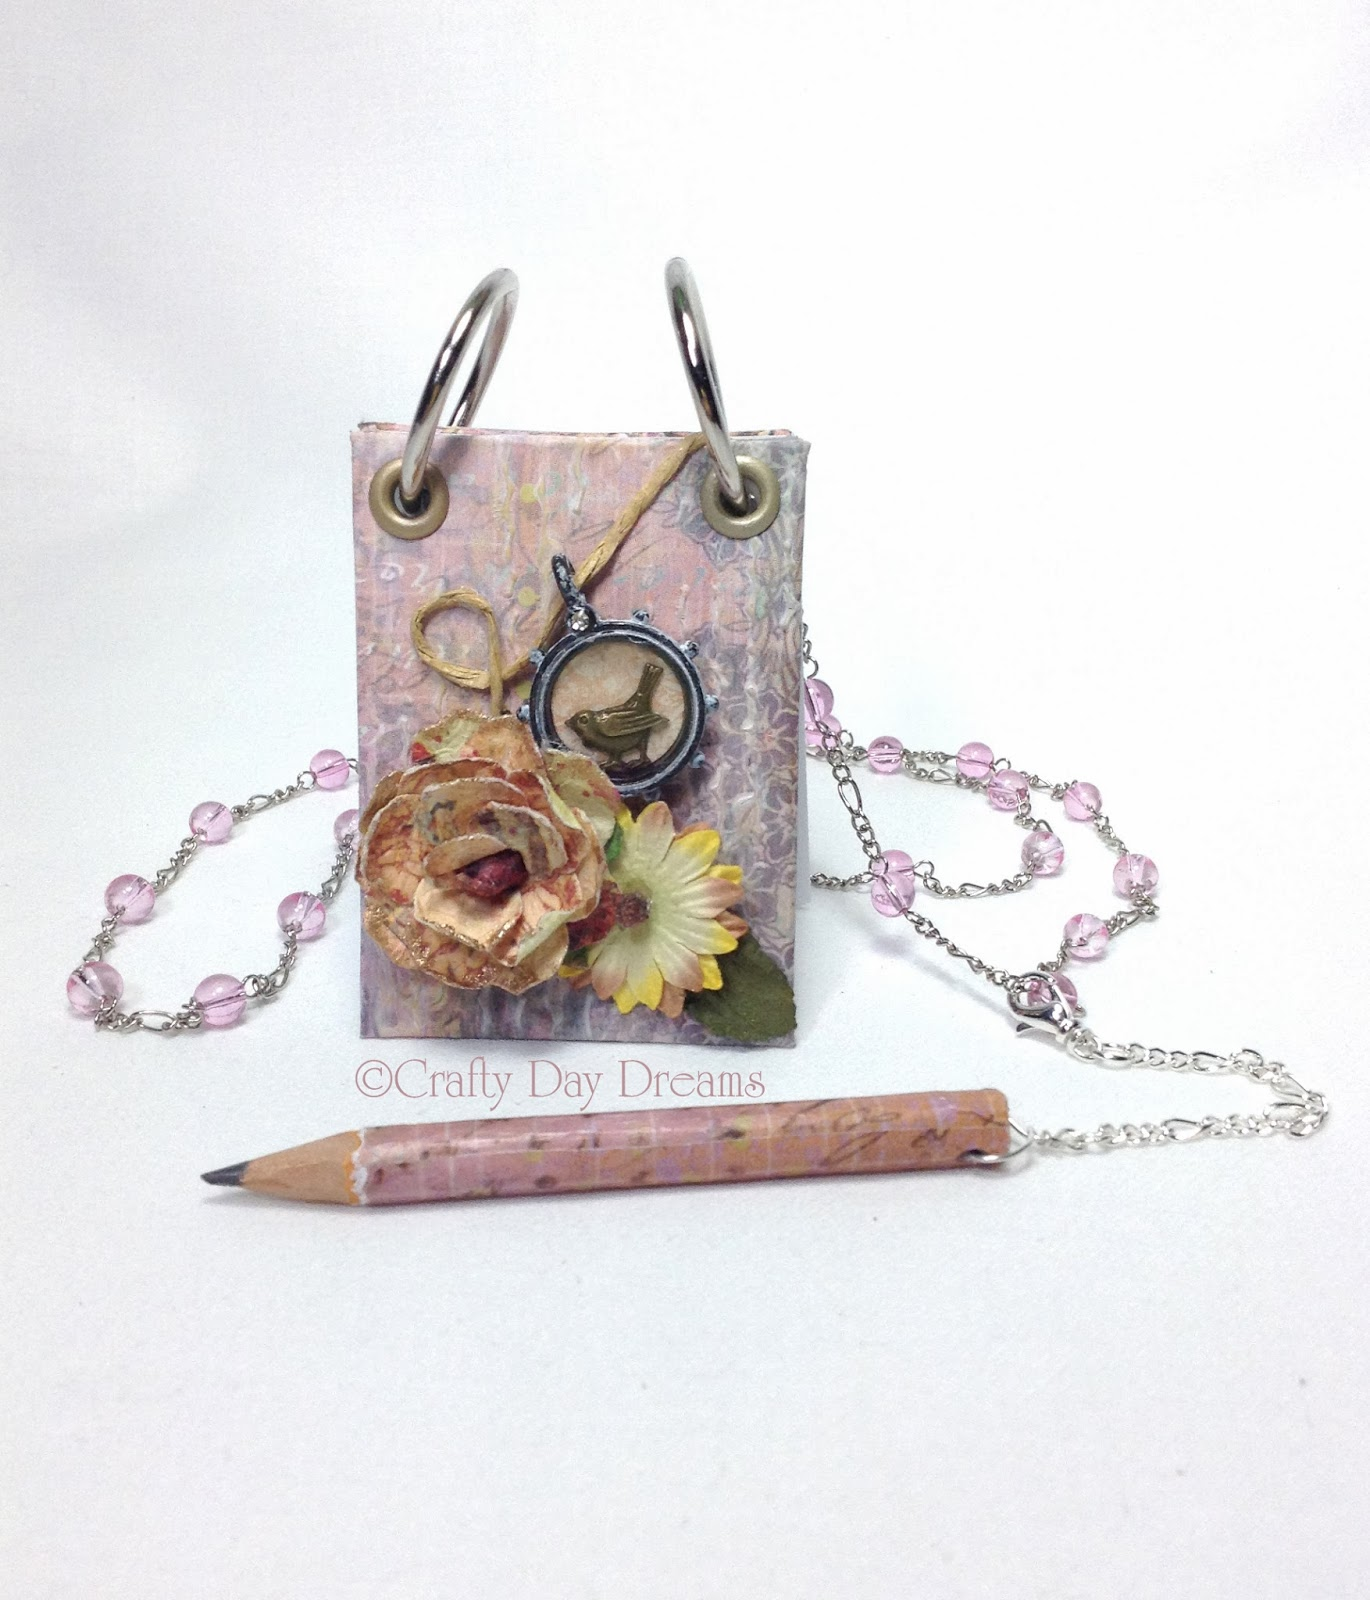 http://www.artfire.com/ext/shop/studio/CraftyDayDreams/1/7/380150//